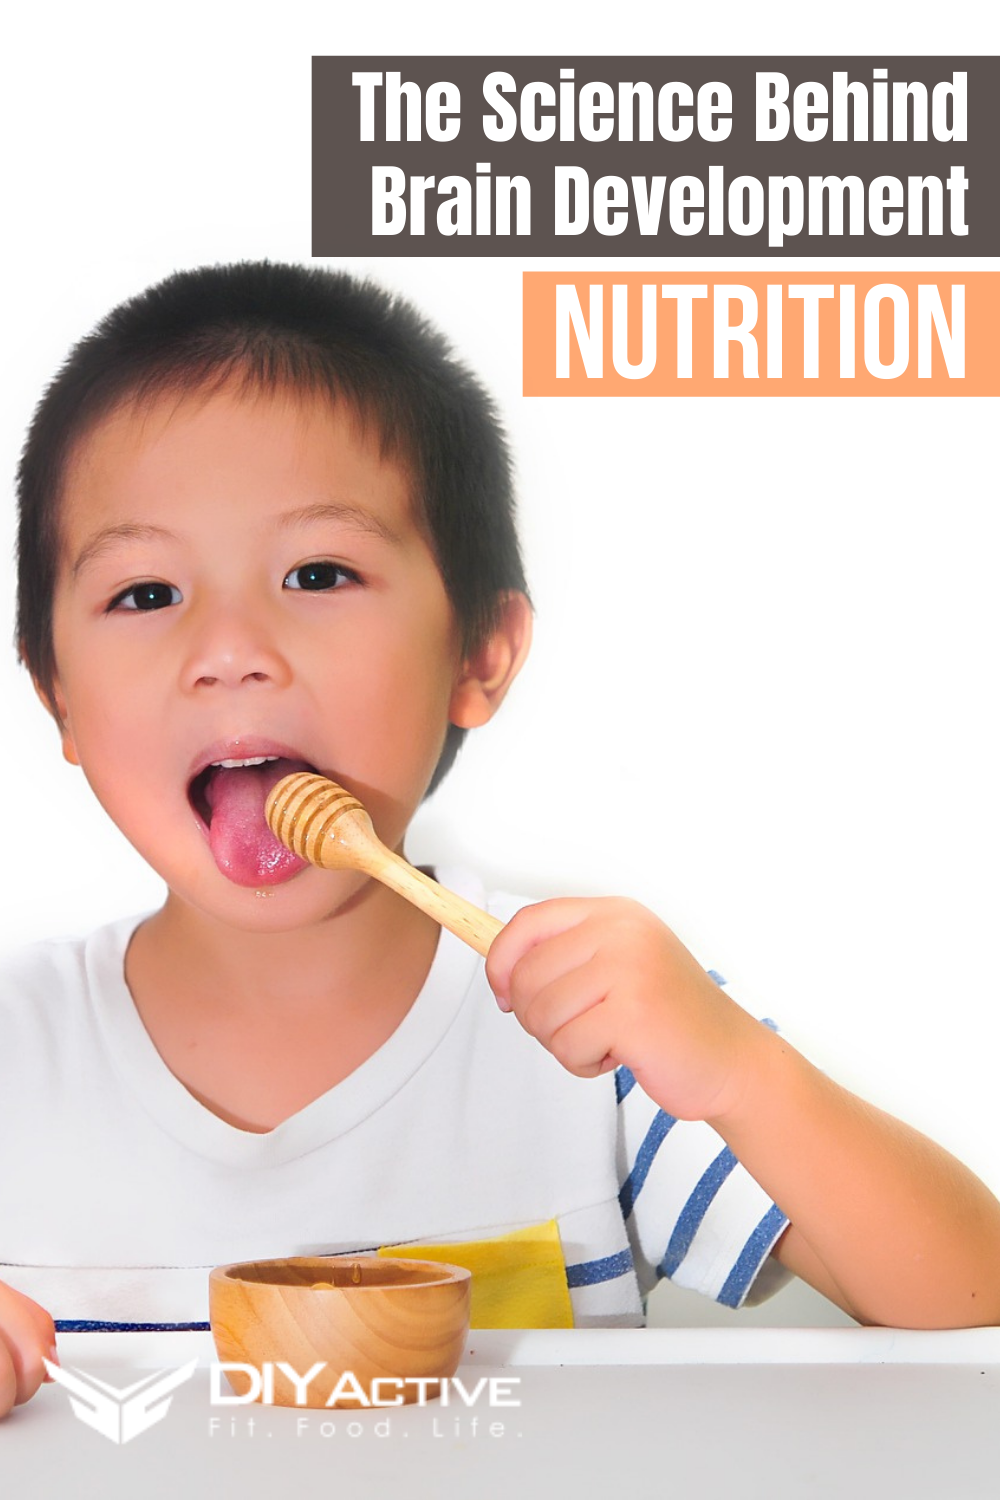 The Science Behind Brain Development Nutrition